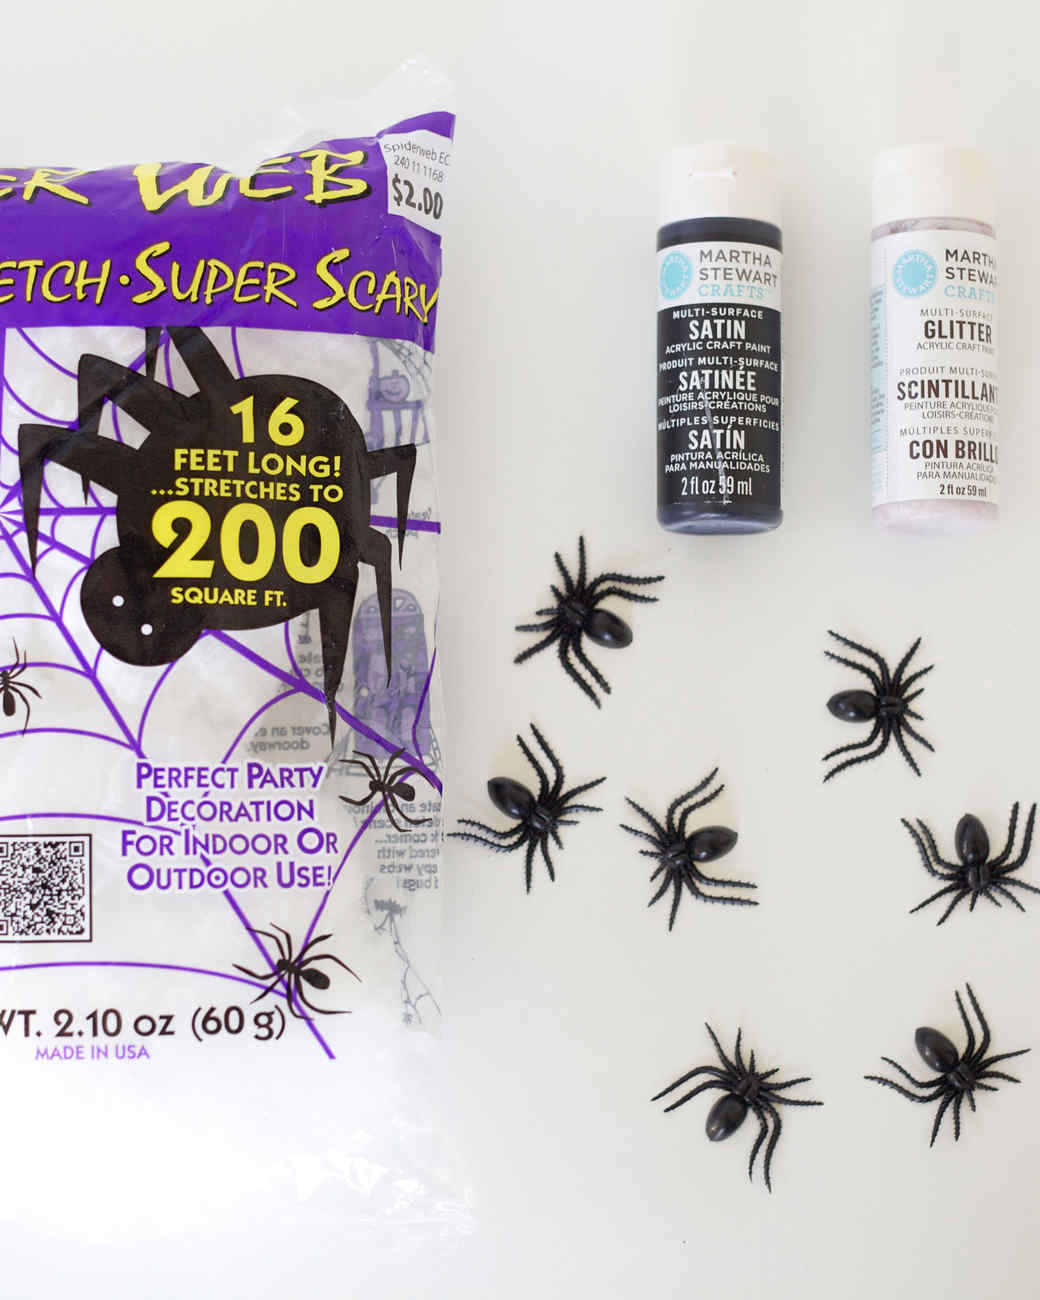 alison-show-spiderweb-supplies.jpg